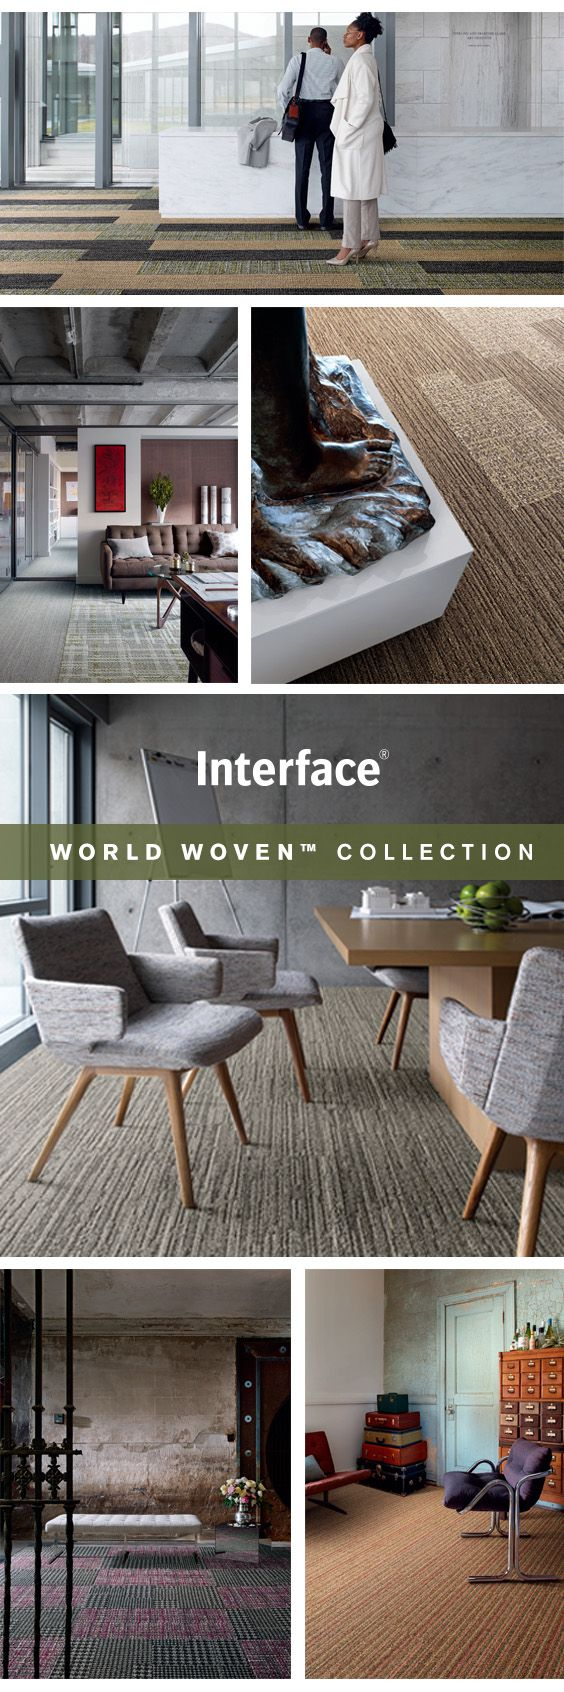 Finishes For Interior Design Interface A First Look At Our New